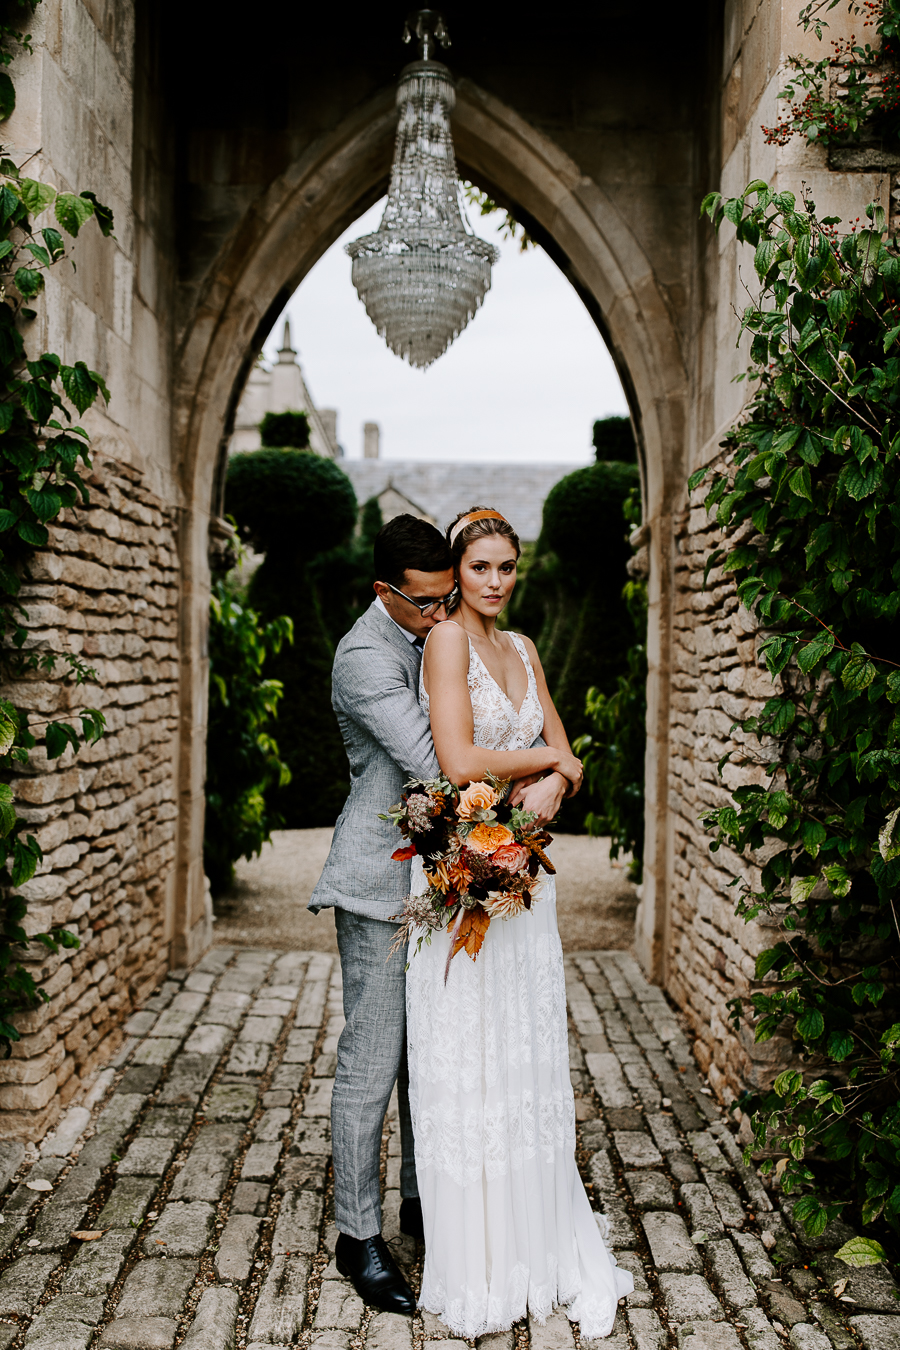 A magical wiltshire wedding venue - the Lost Orangery with Sam Cook Photography (24)